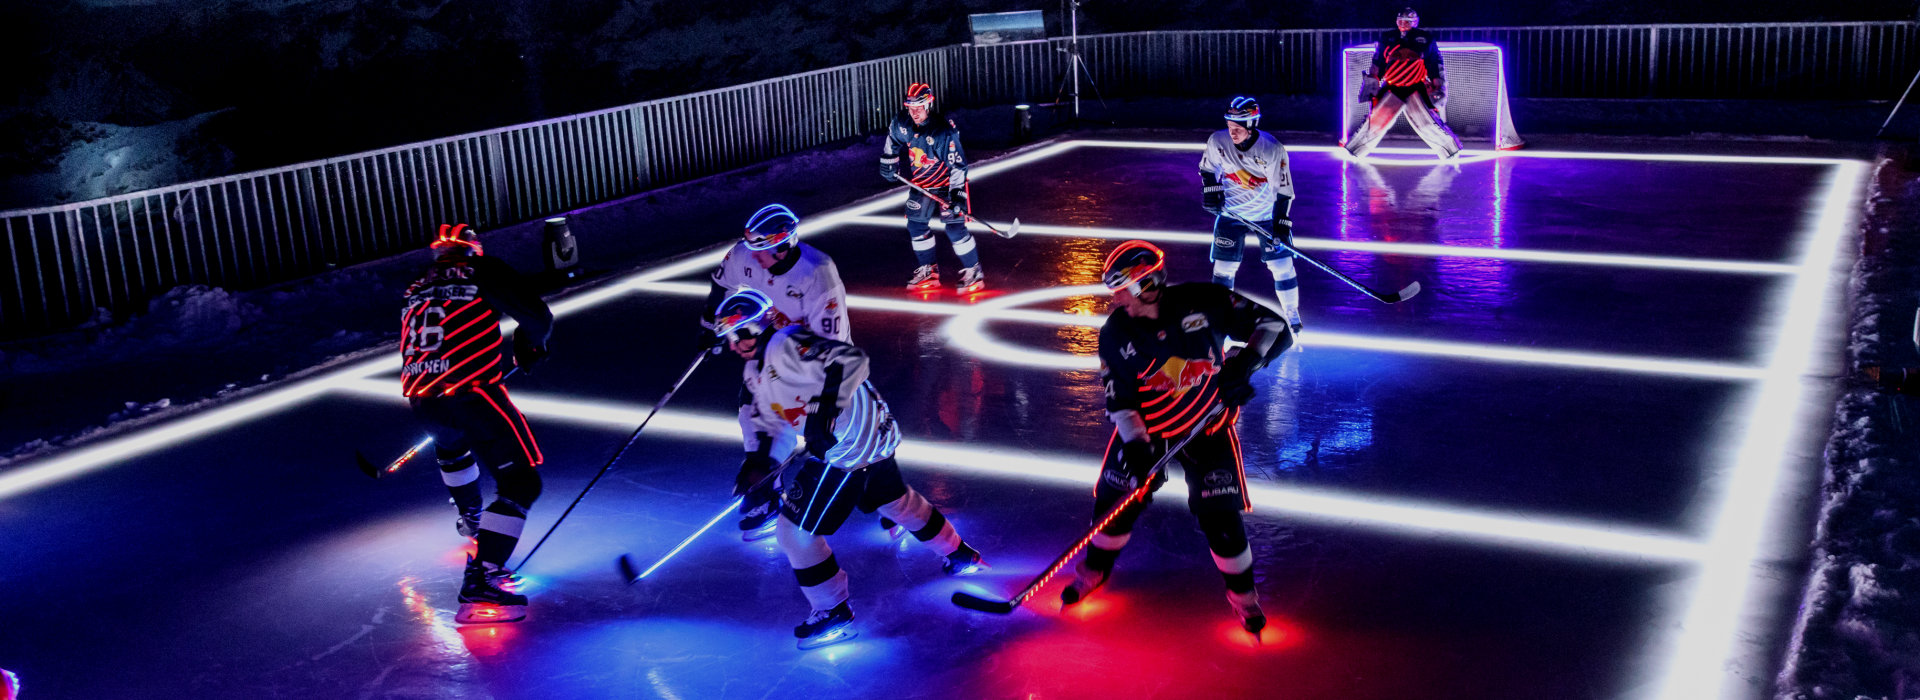 textile illumination for ice hockey players of EHC Red Bull München: high-performance sport meets high-performance lighting